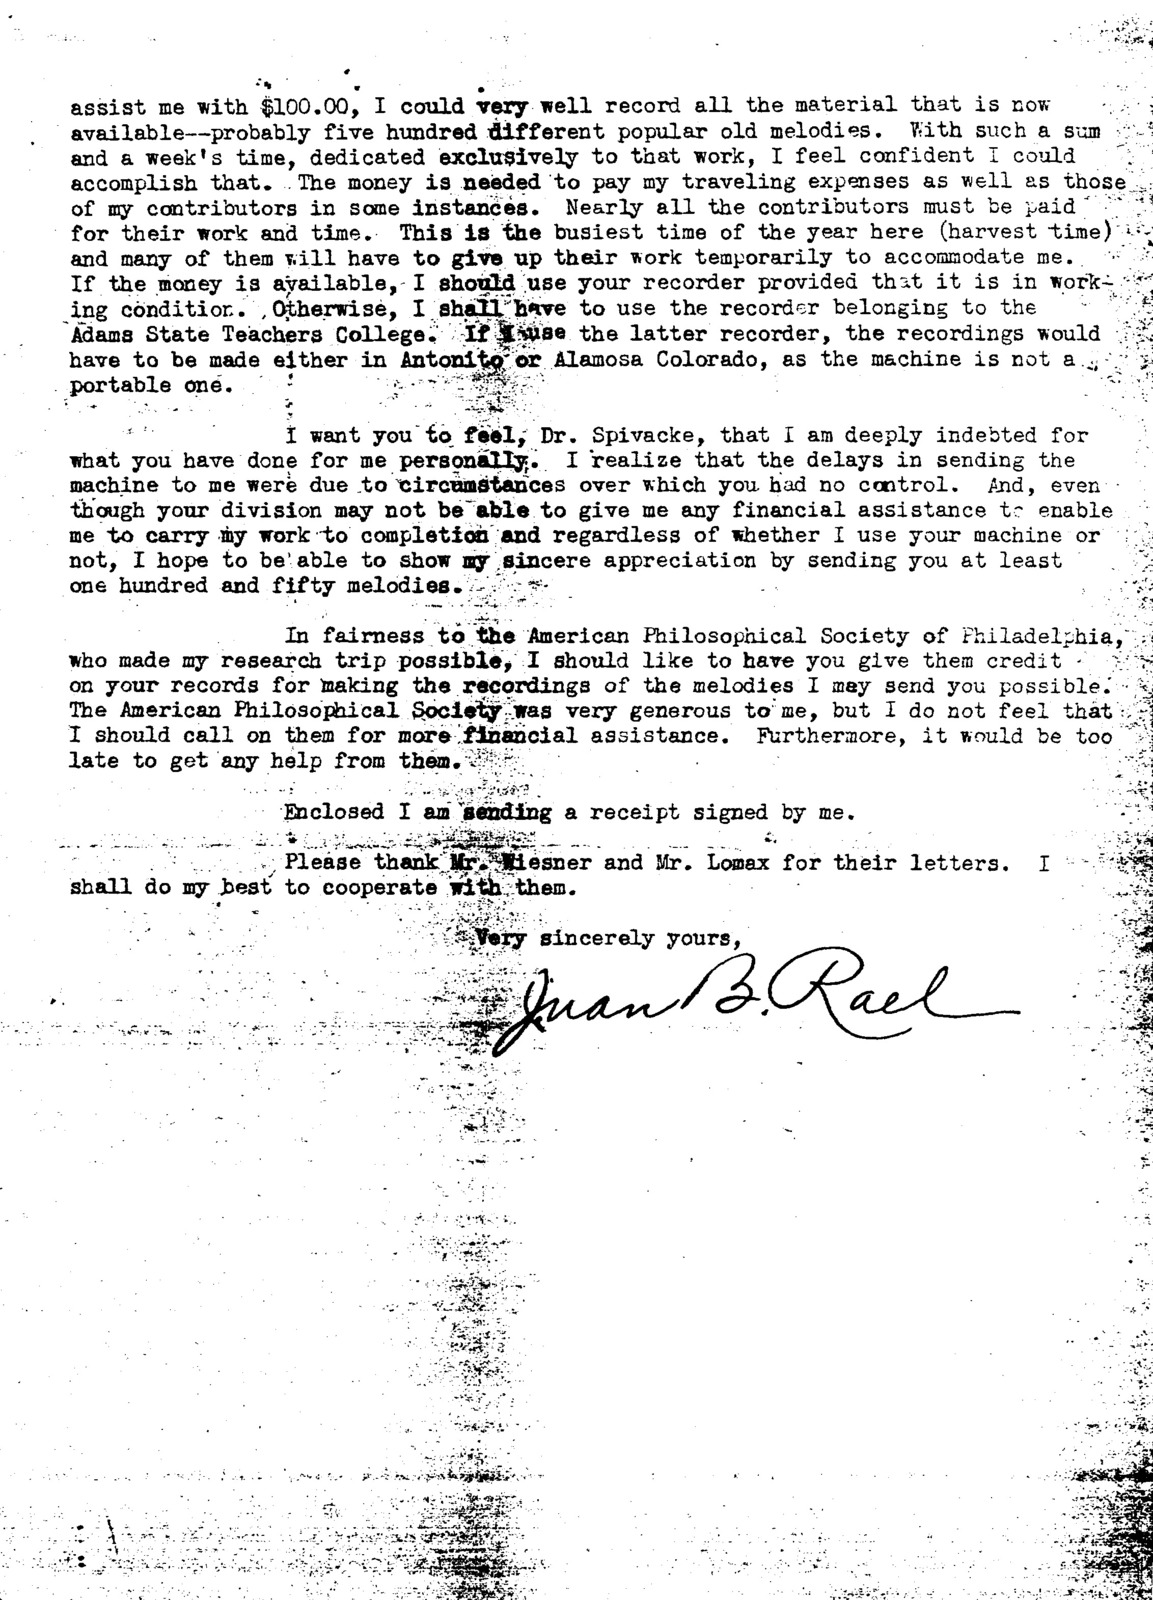 Correspondence to and from Juan B. Rael, Harold Spivacke, Alan Lomax, and Jerome B. Wiesner